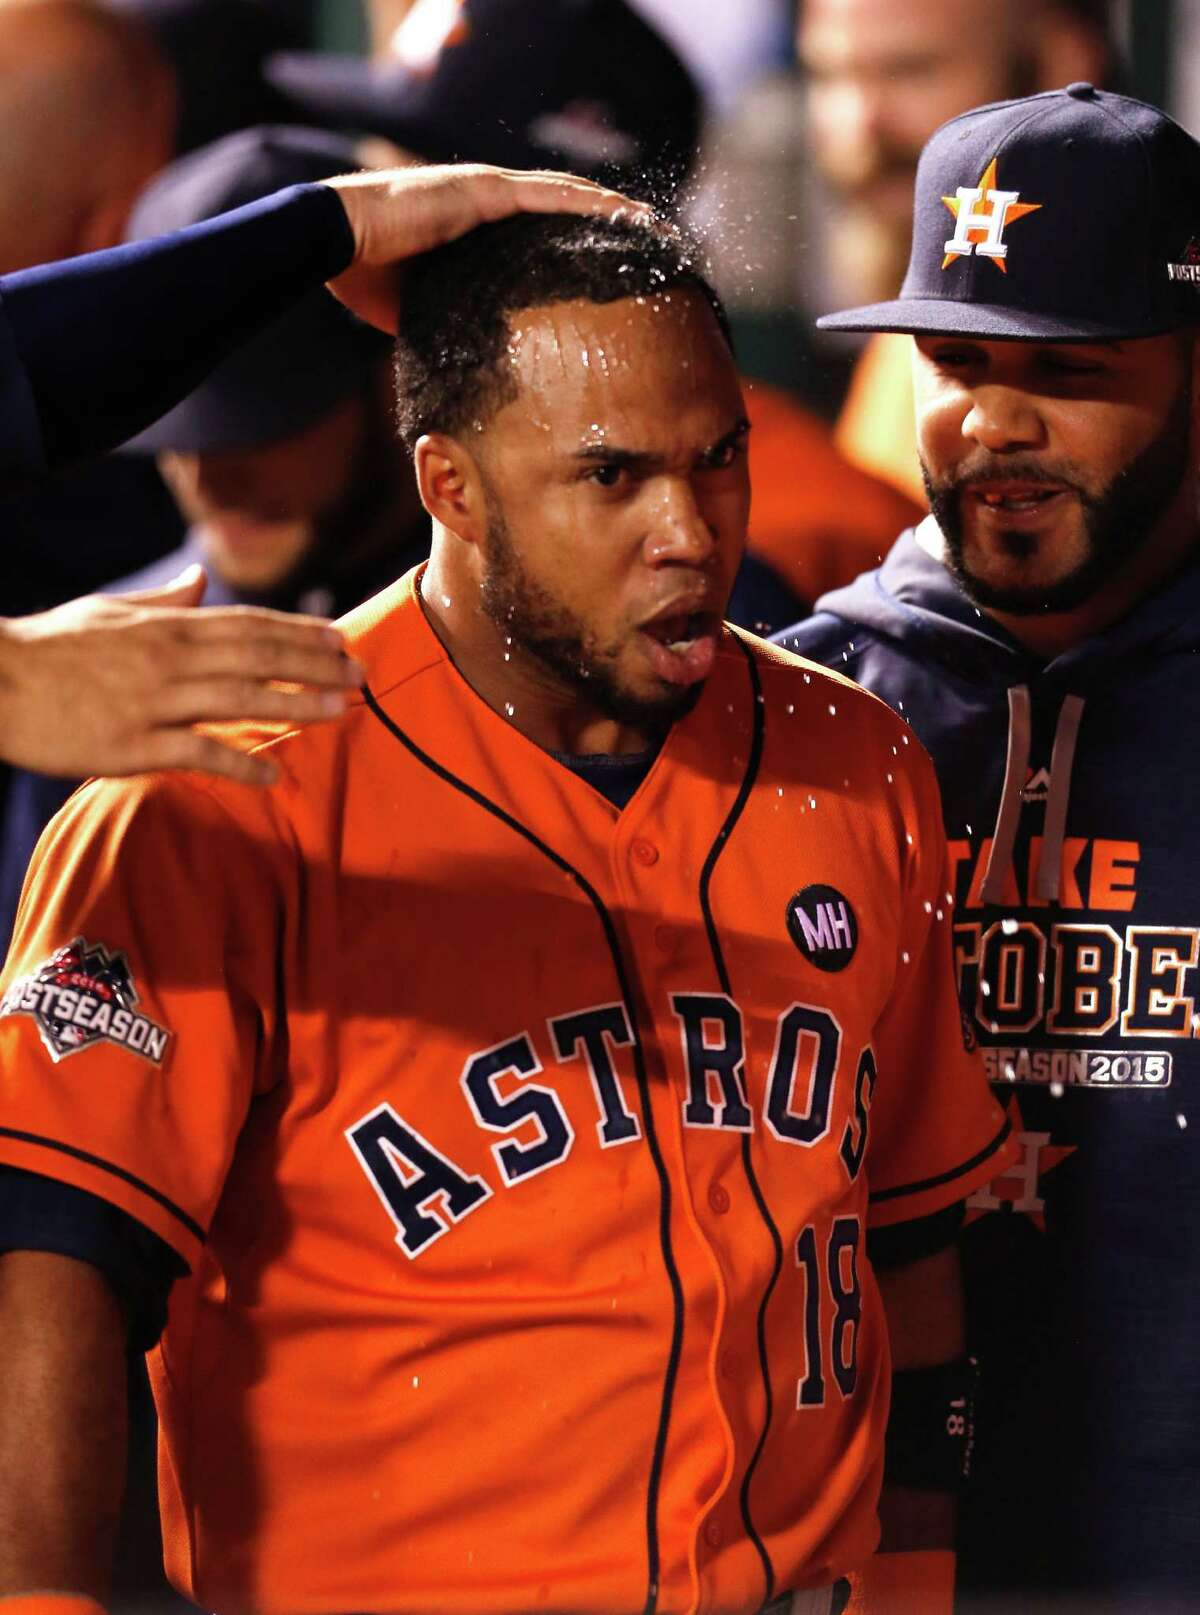 Houston Astros third baseman Luis Valbuena is splashed with water in the dugout after hitting a 2-run home run off Kansas City Royals starting pitcher Johnny Cueto during the second inning of Game 5 of the American League Division Series at Kauffman Stadium on Wednesday, Oct. 14, 2015, in Kansas City.